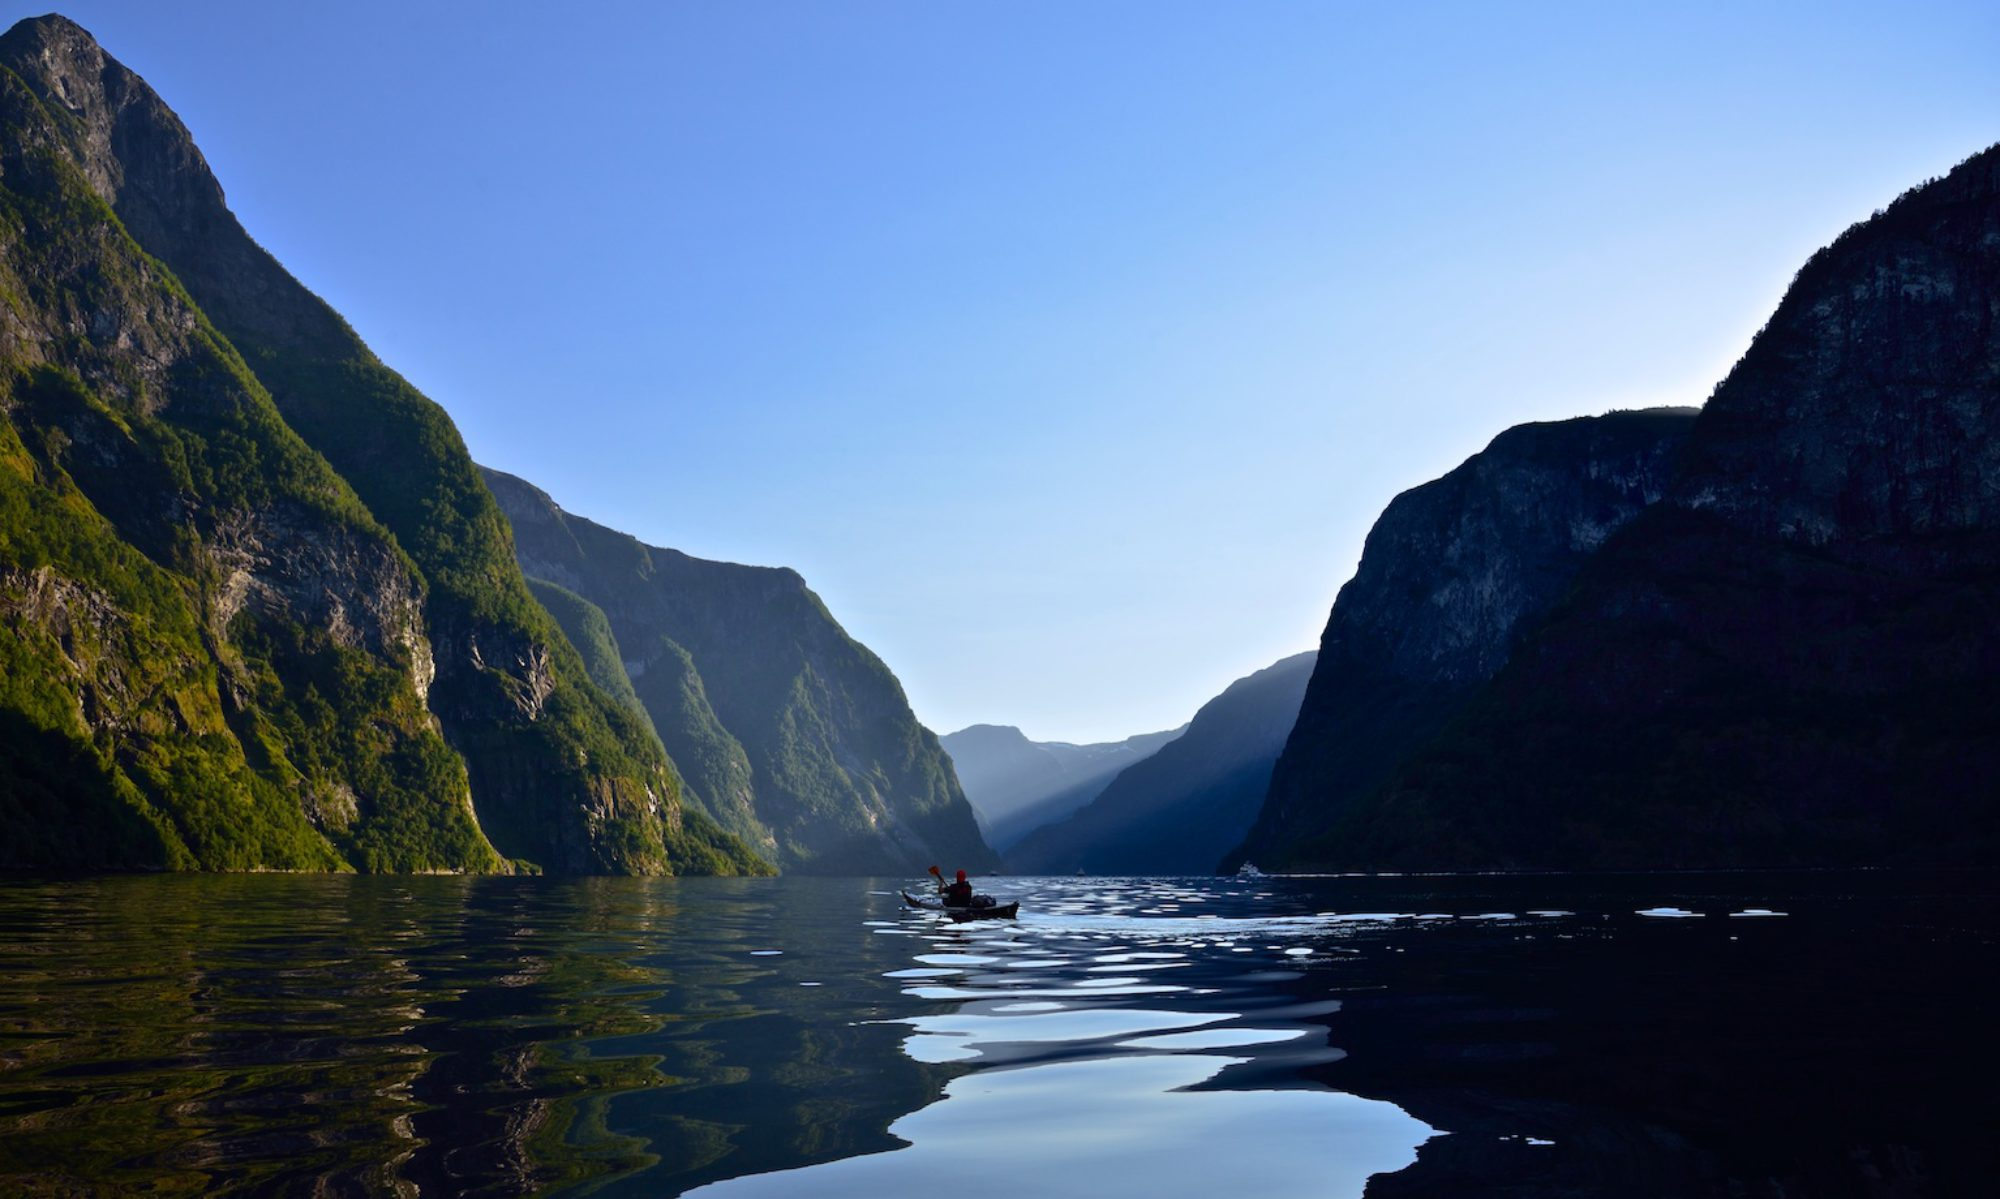 Fjordfun in the Sognefjord